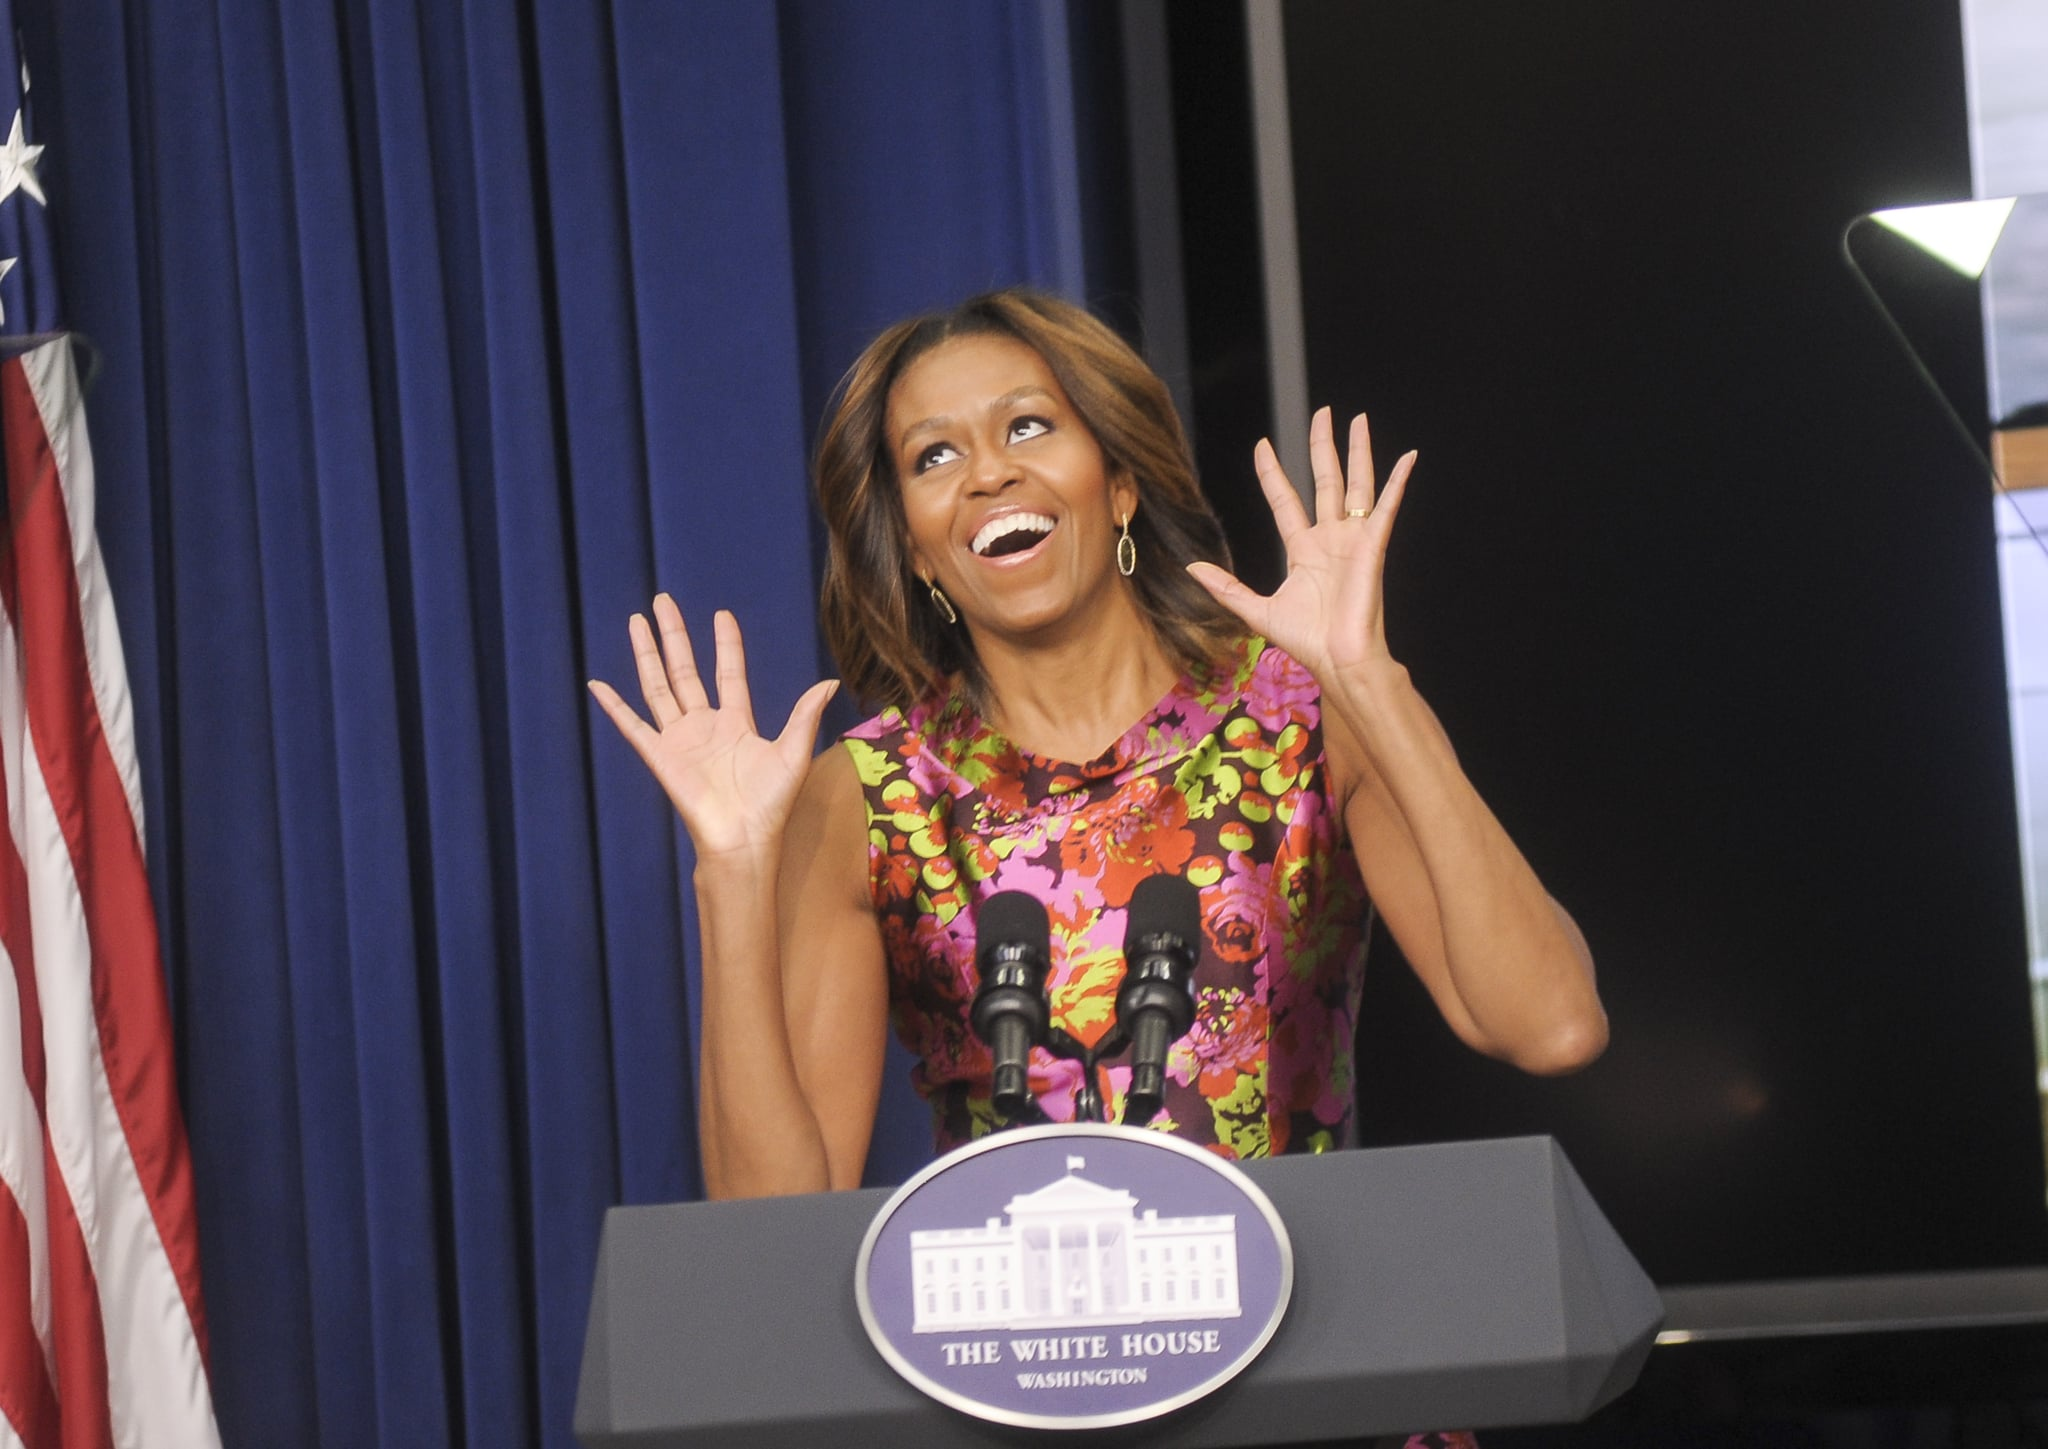 First Lady Michelle Obama got animated while delivering remarks at the event.